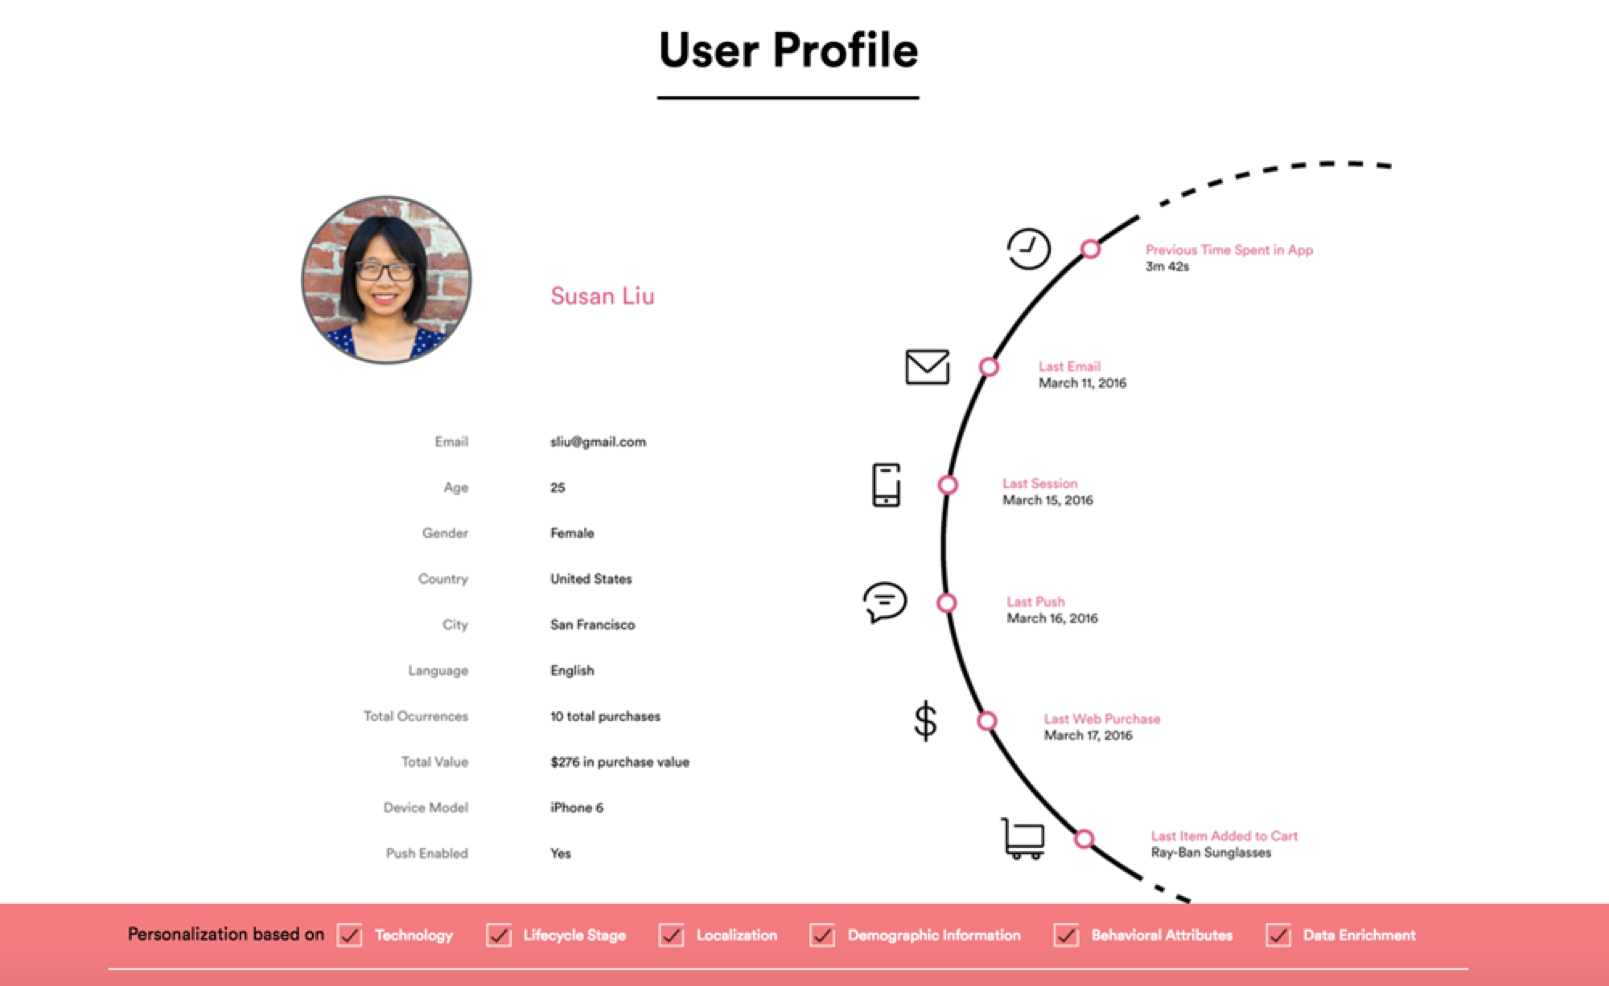 user profile generated from data